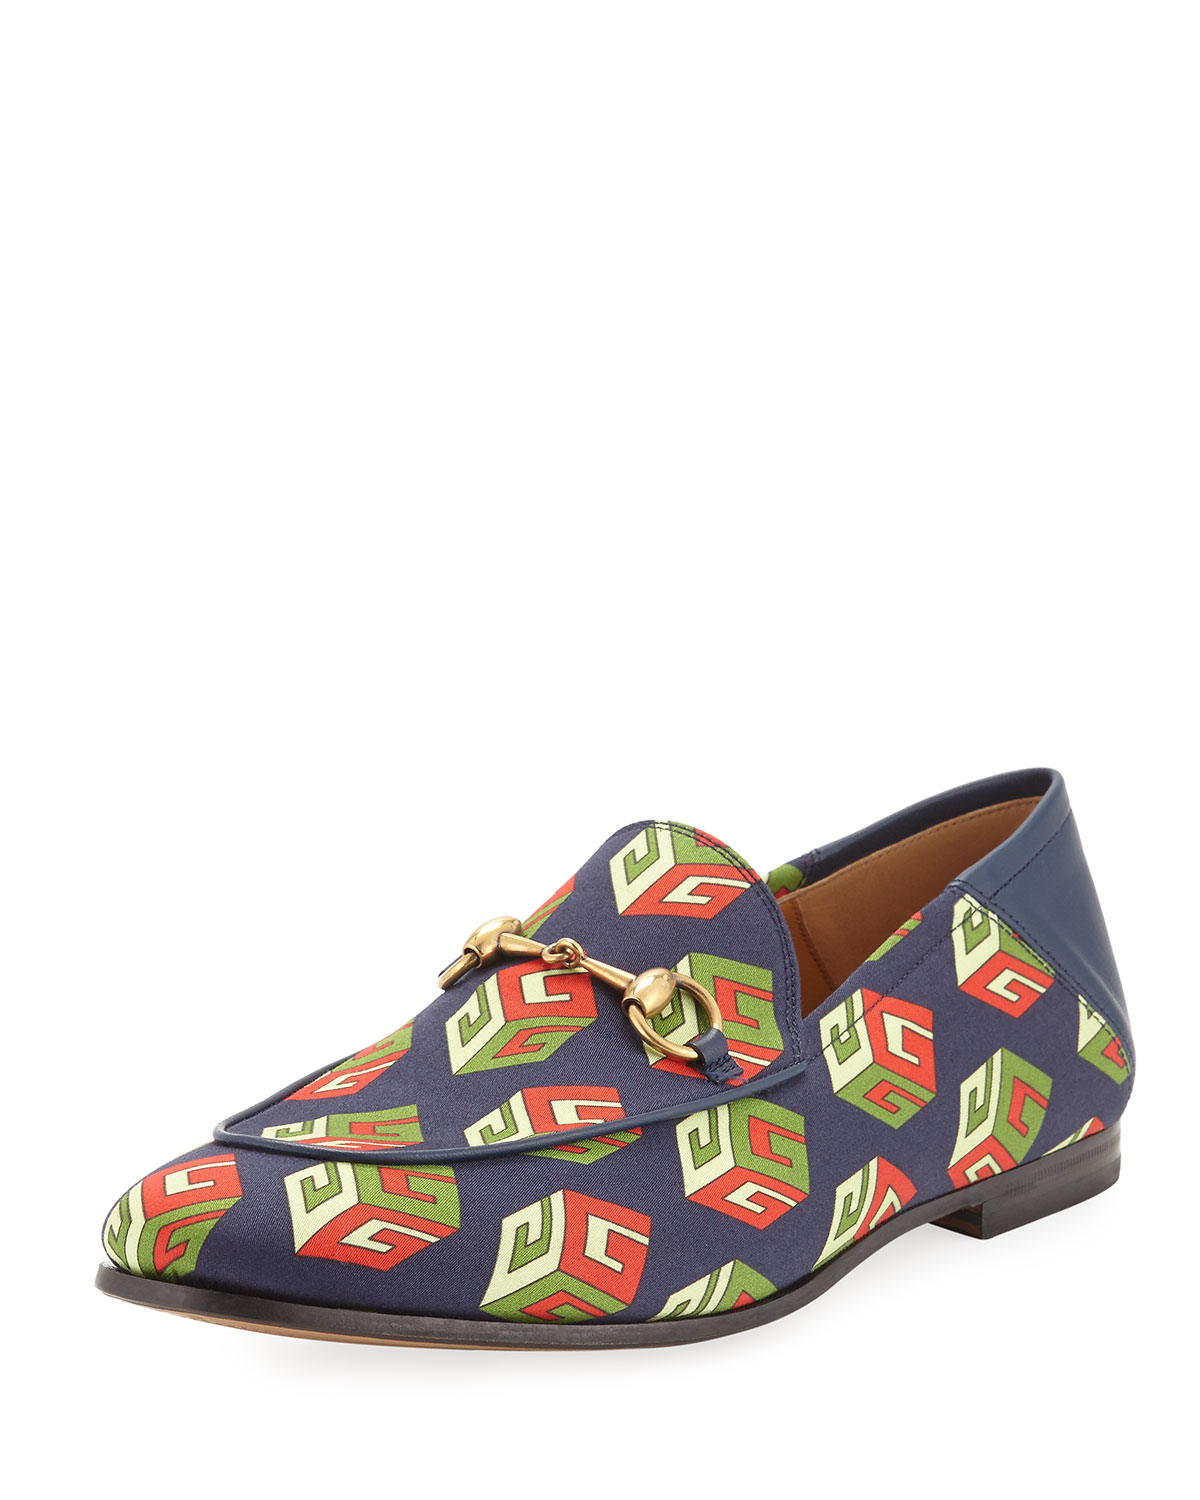 972b5035eaf Gucci Brixton GG Wallpaper Print Loafer